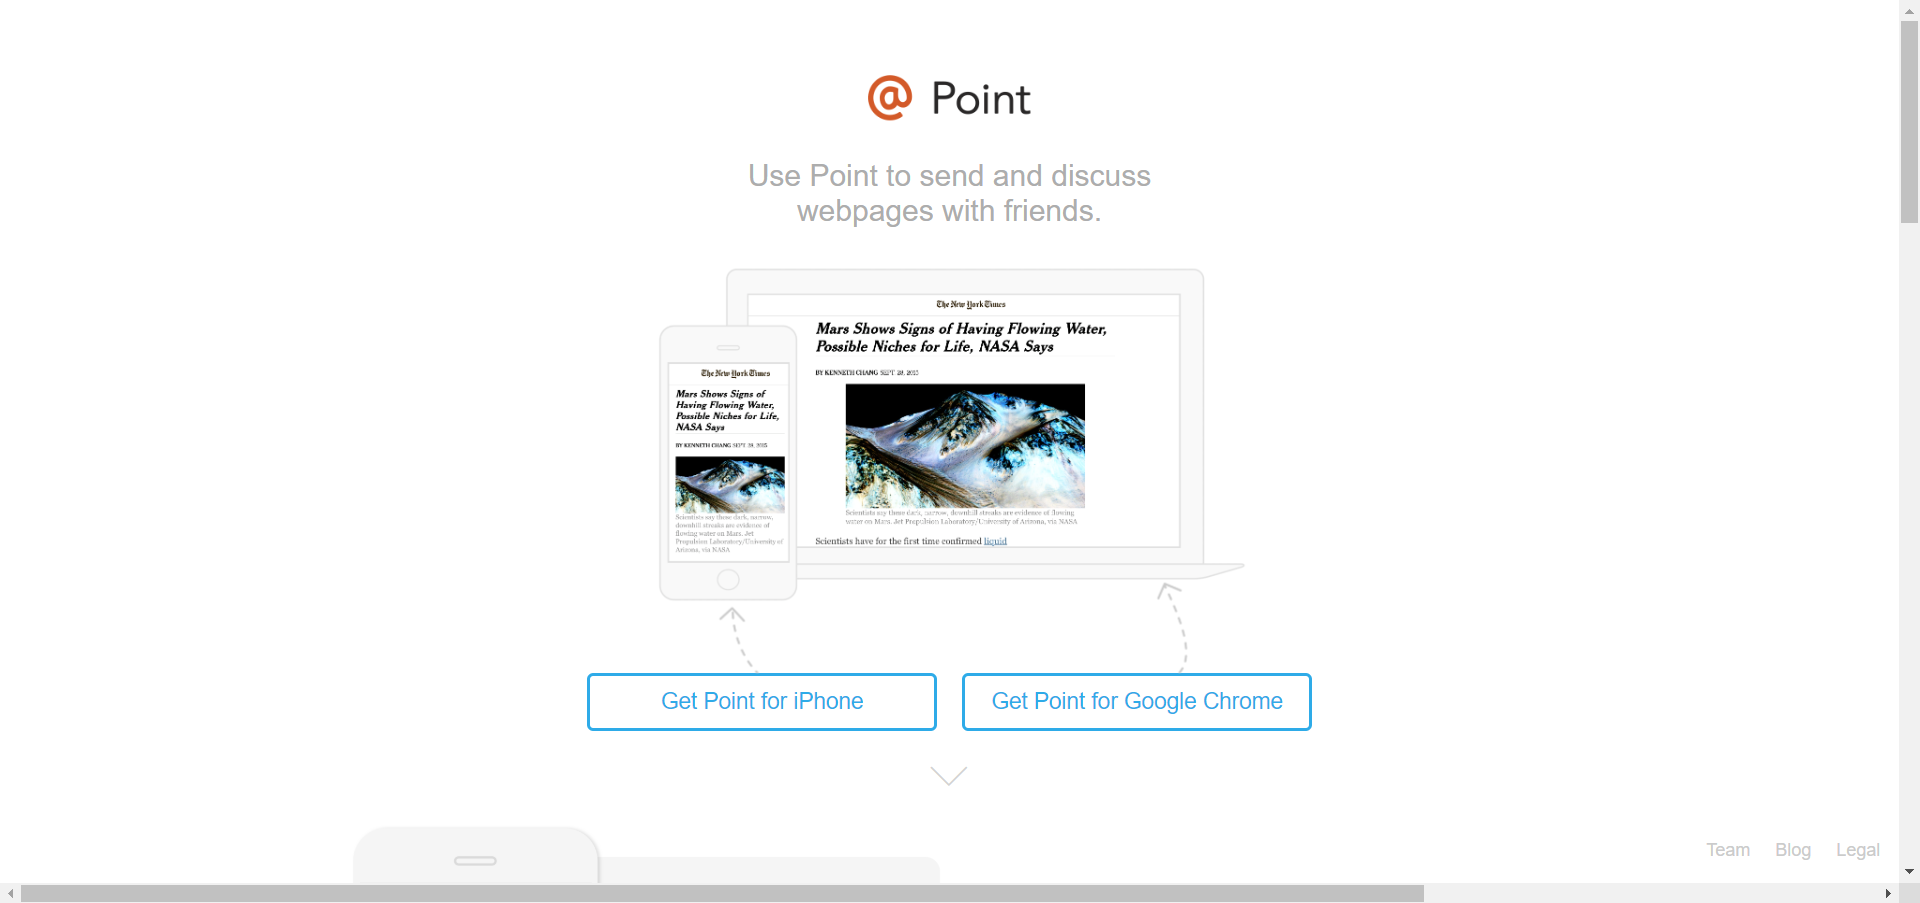 Point website image